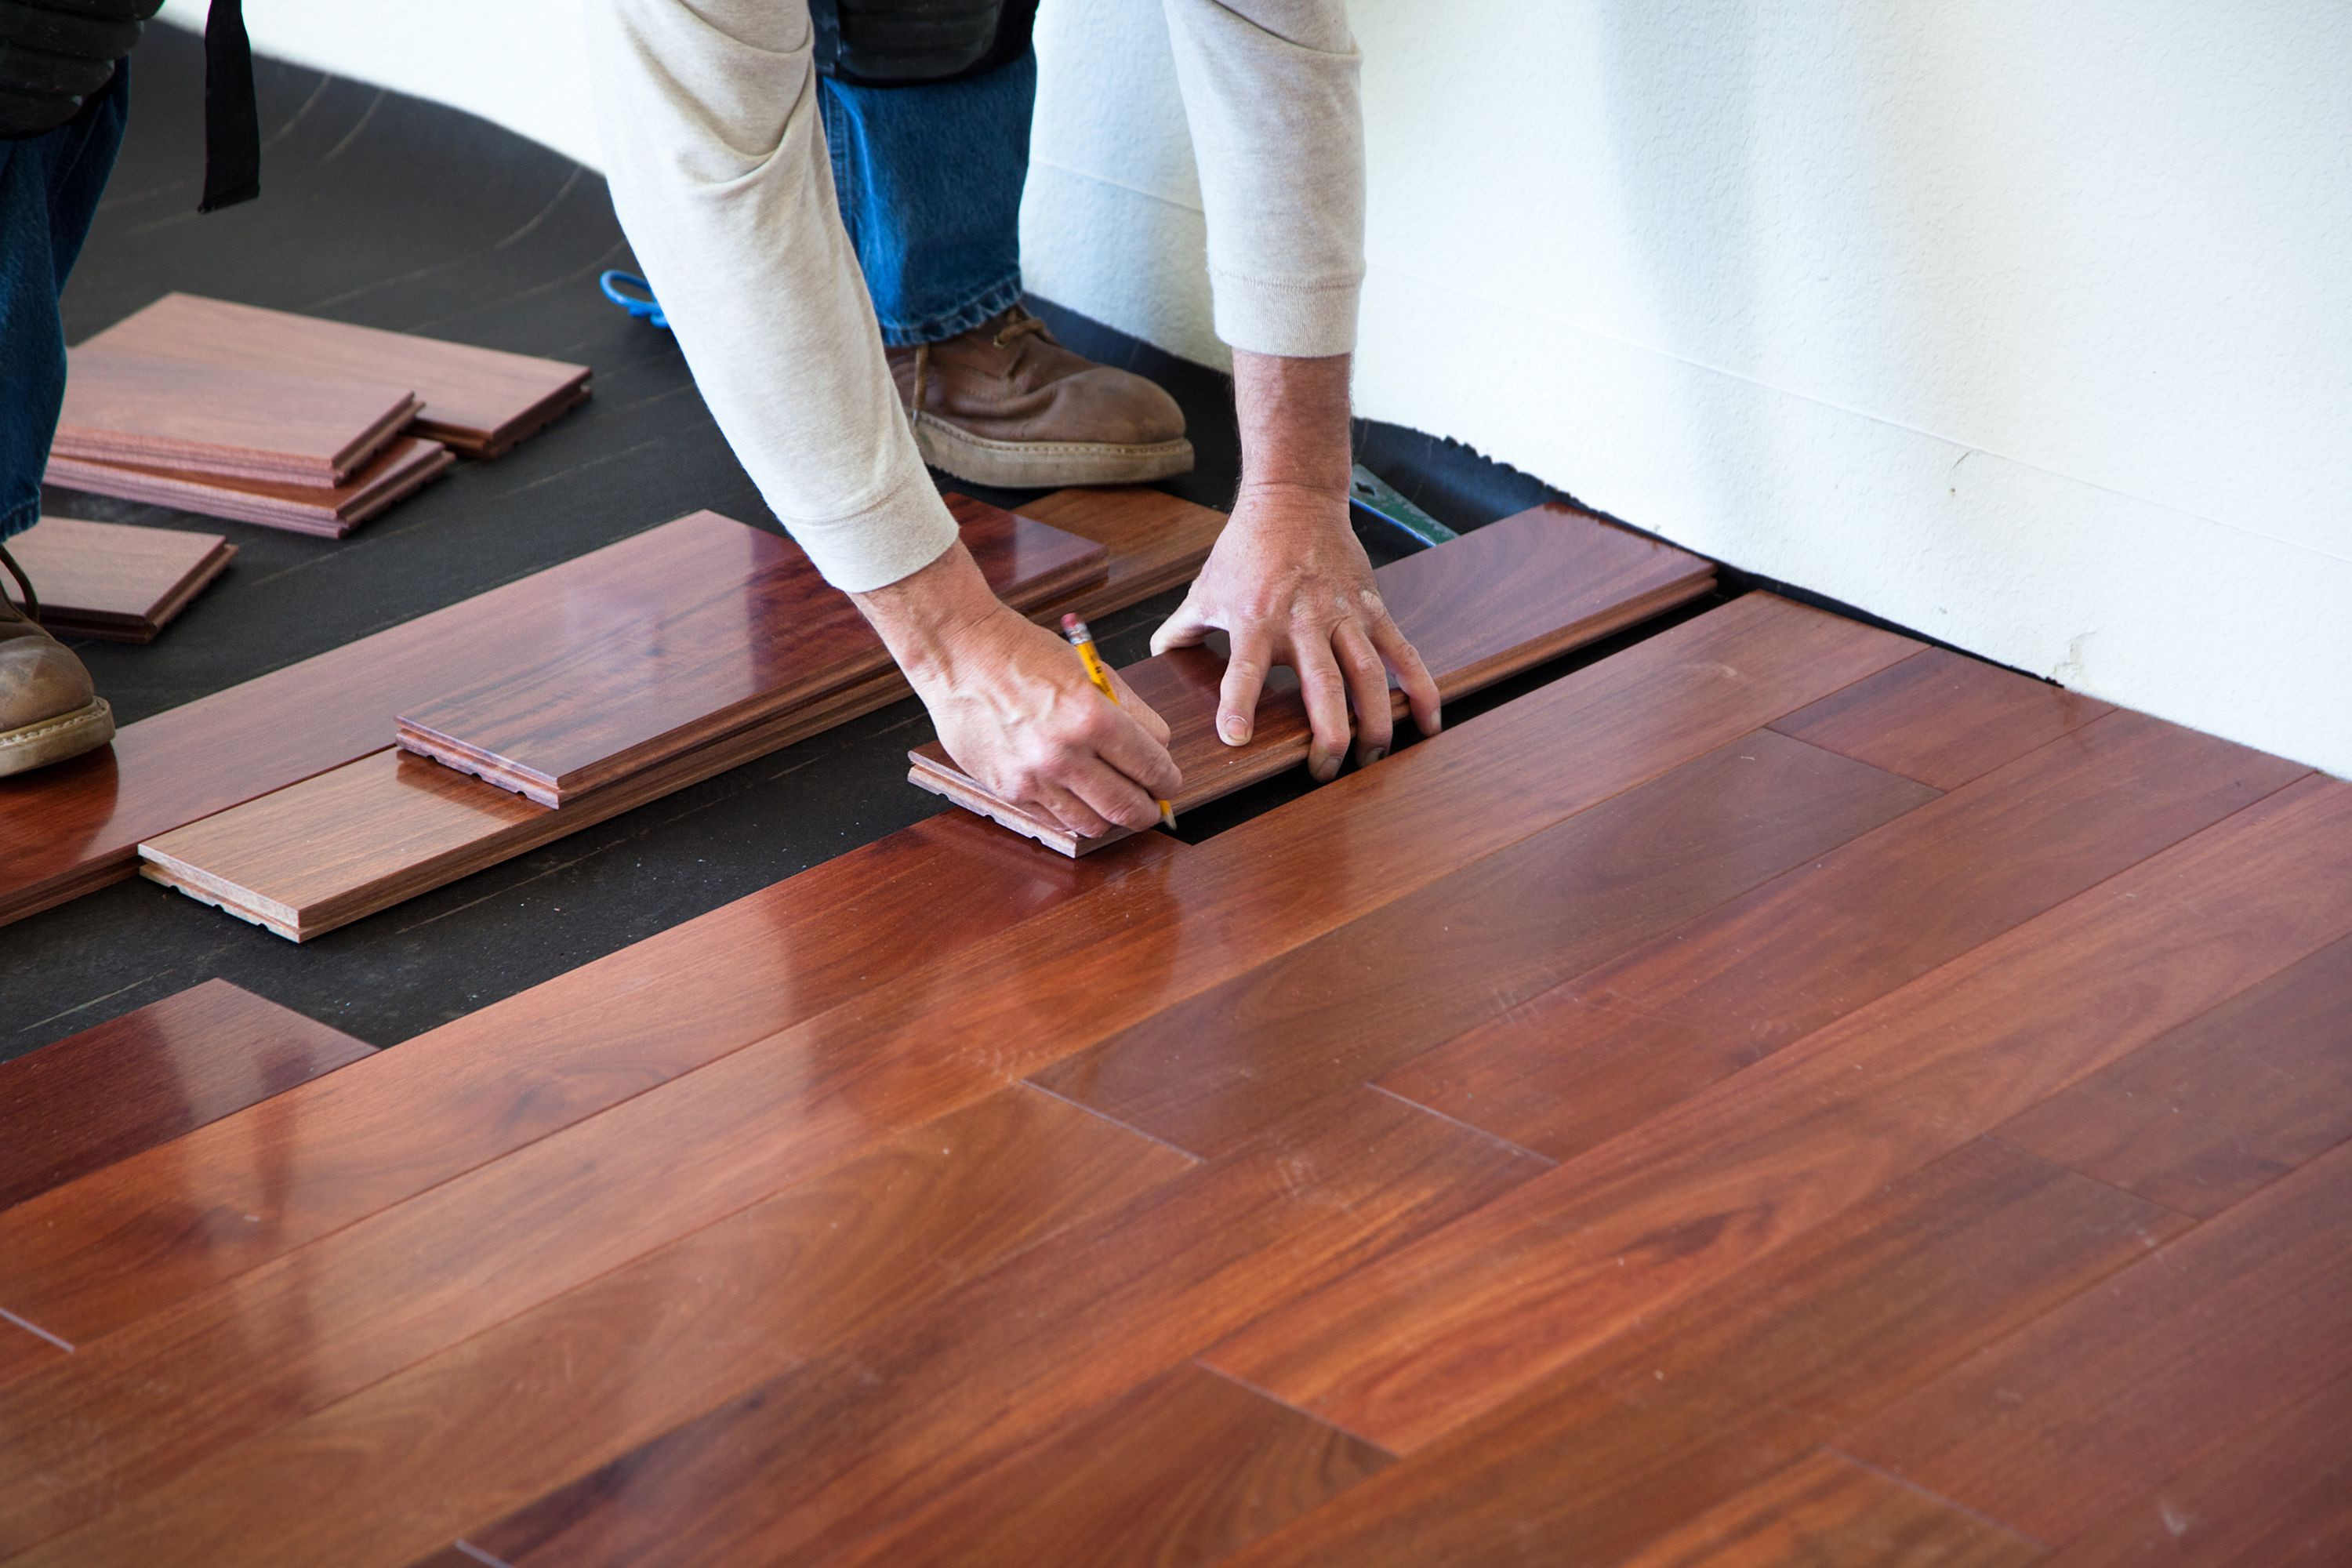 Glue for Hardwood Floor Repair Of the Subfloor is the Foundation Of A Good Floor Throughout Installing Hardwood Floor 170040982 582b748c5f9b58d5b17d0c58